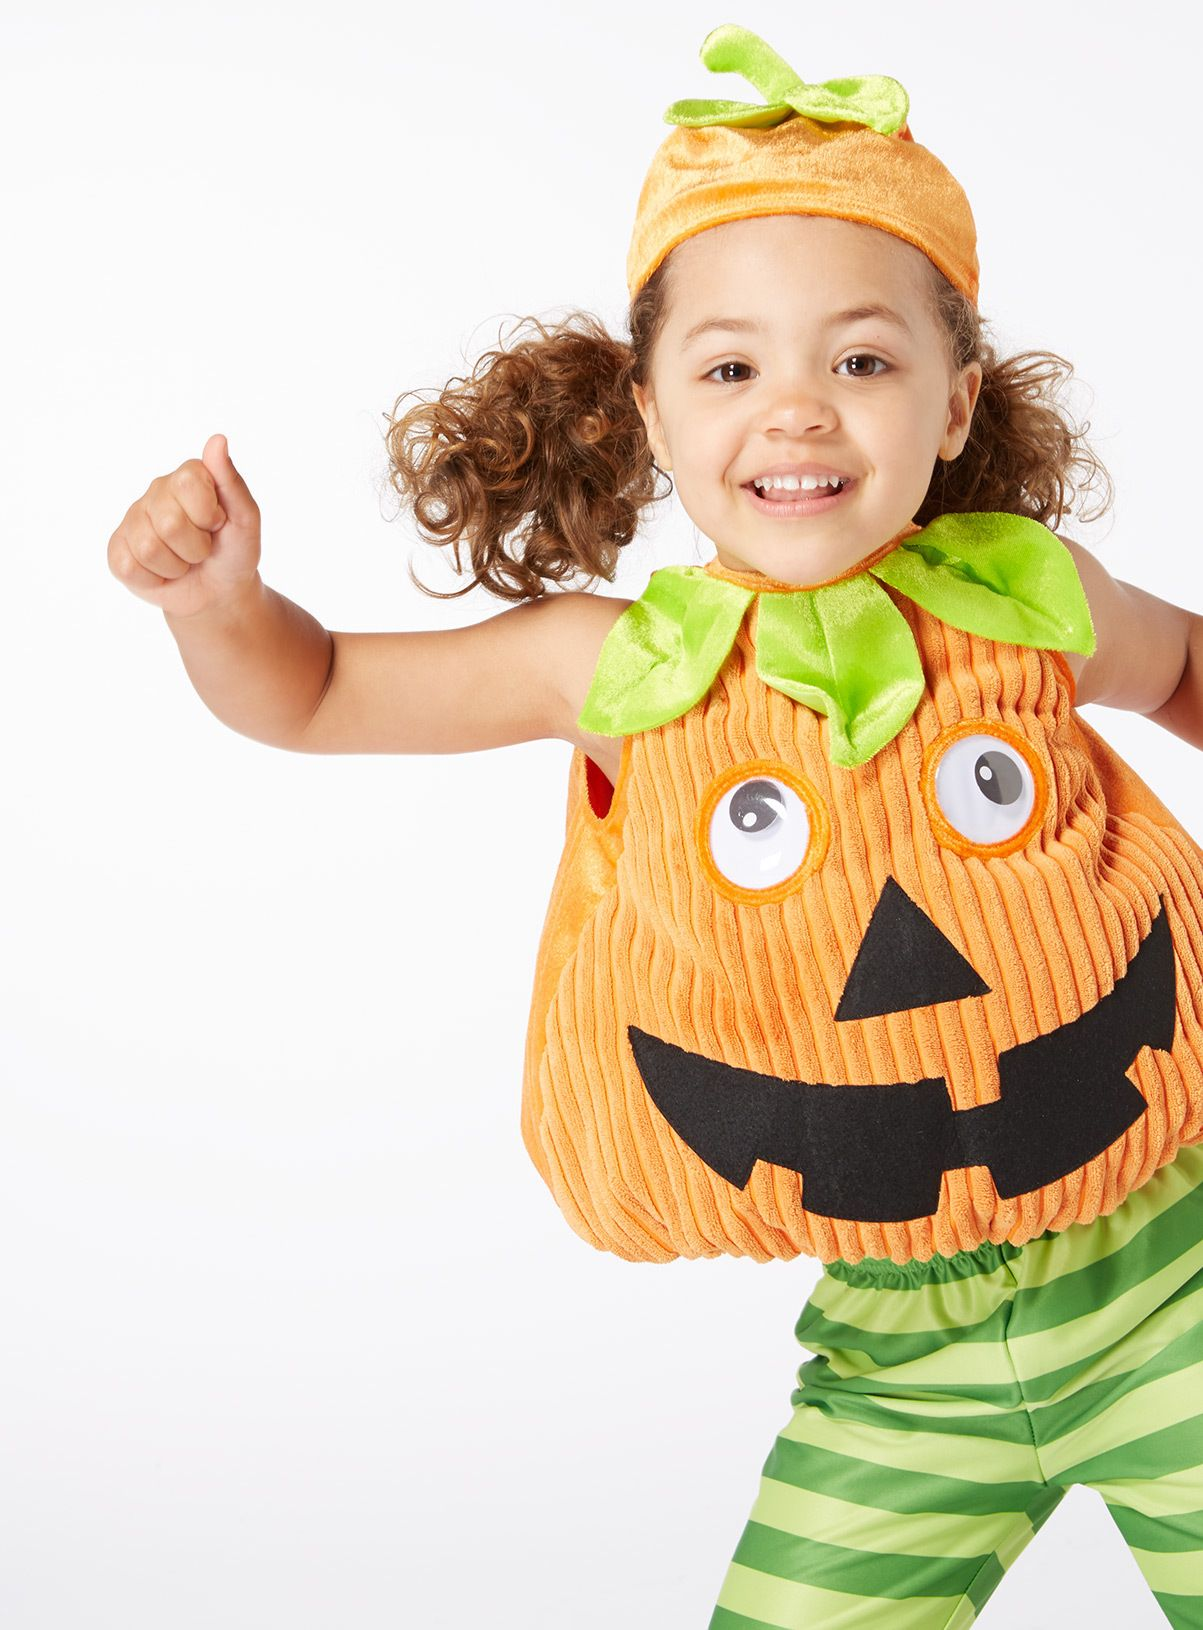 Help your little one be extra scary this Halloween as a